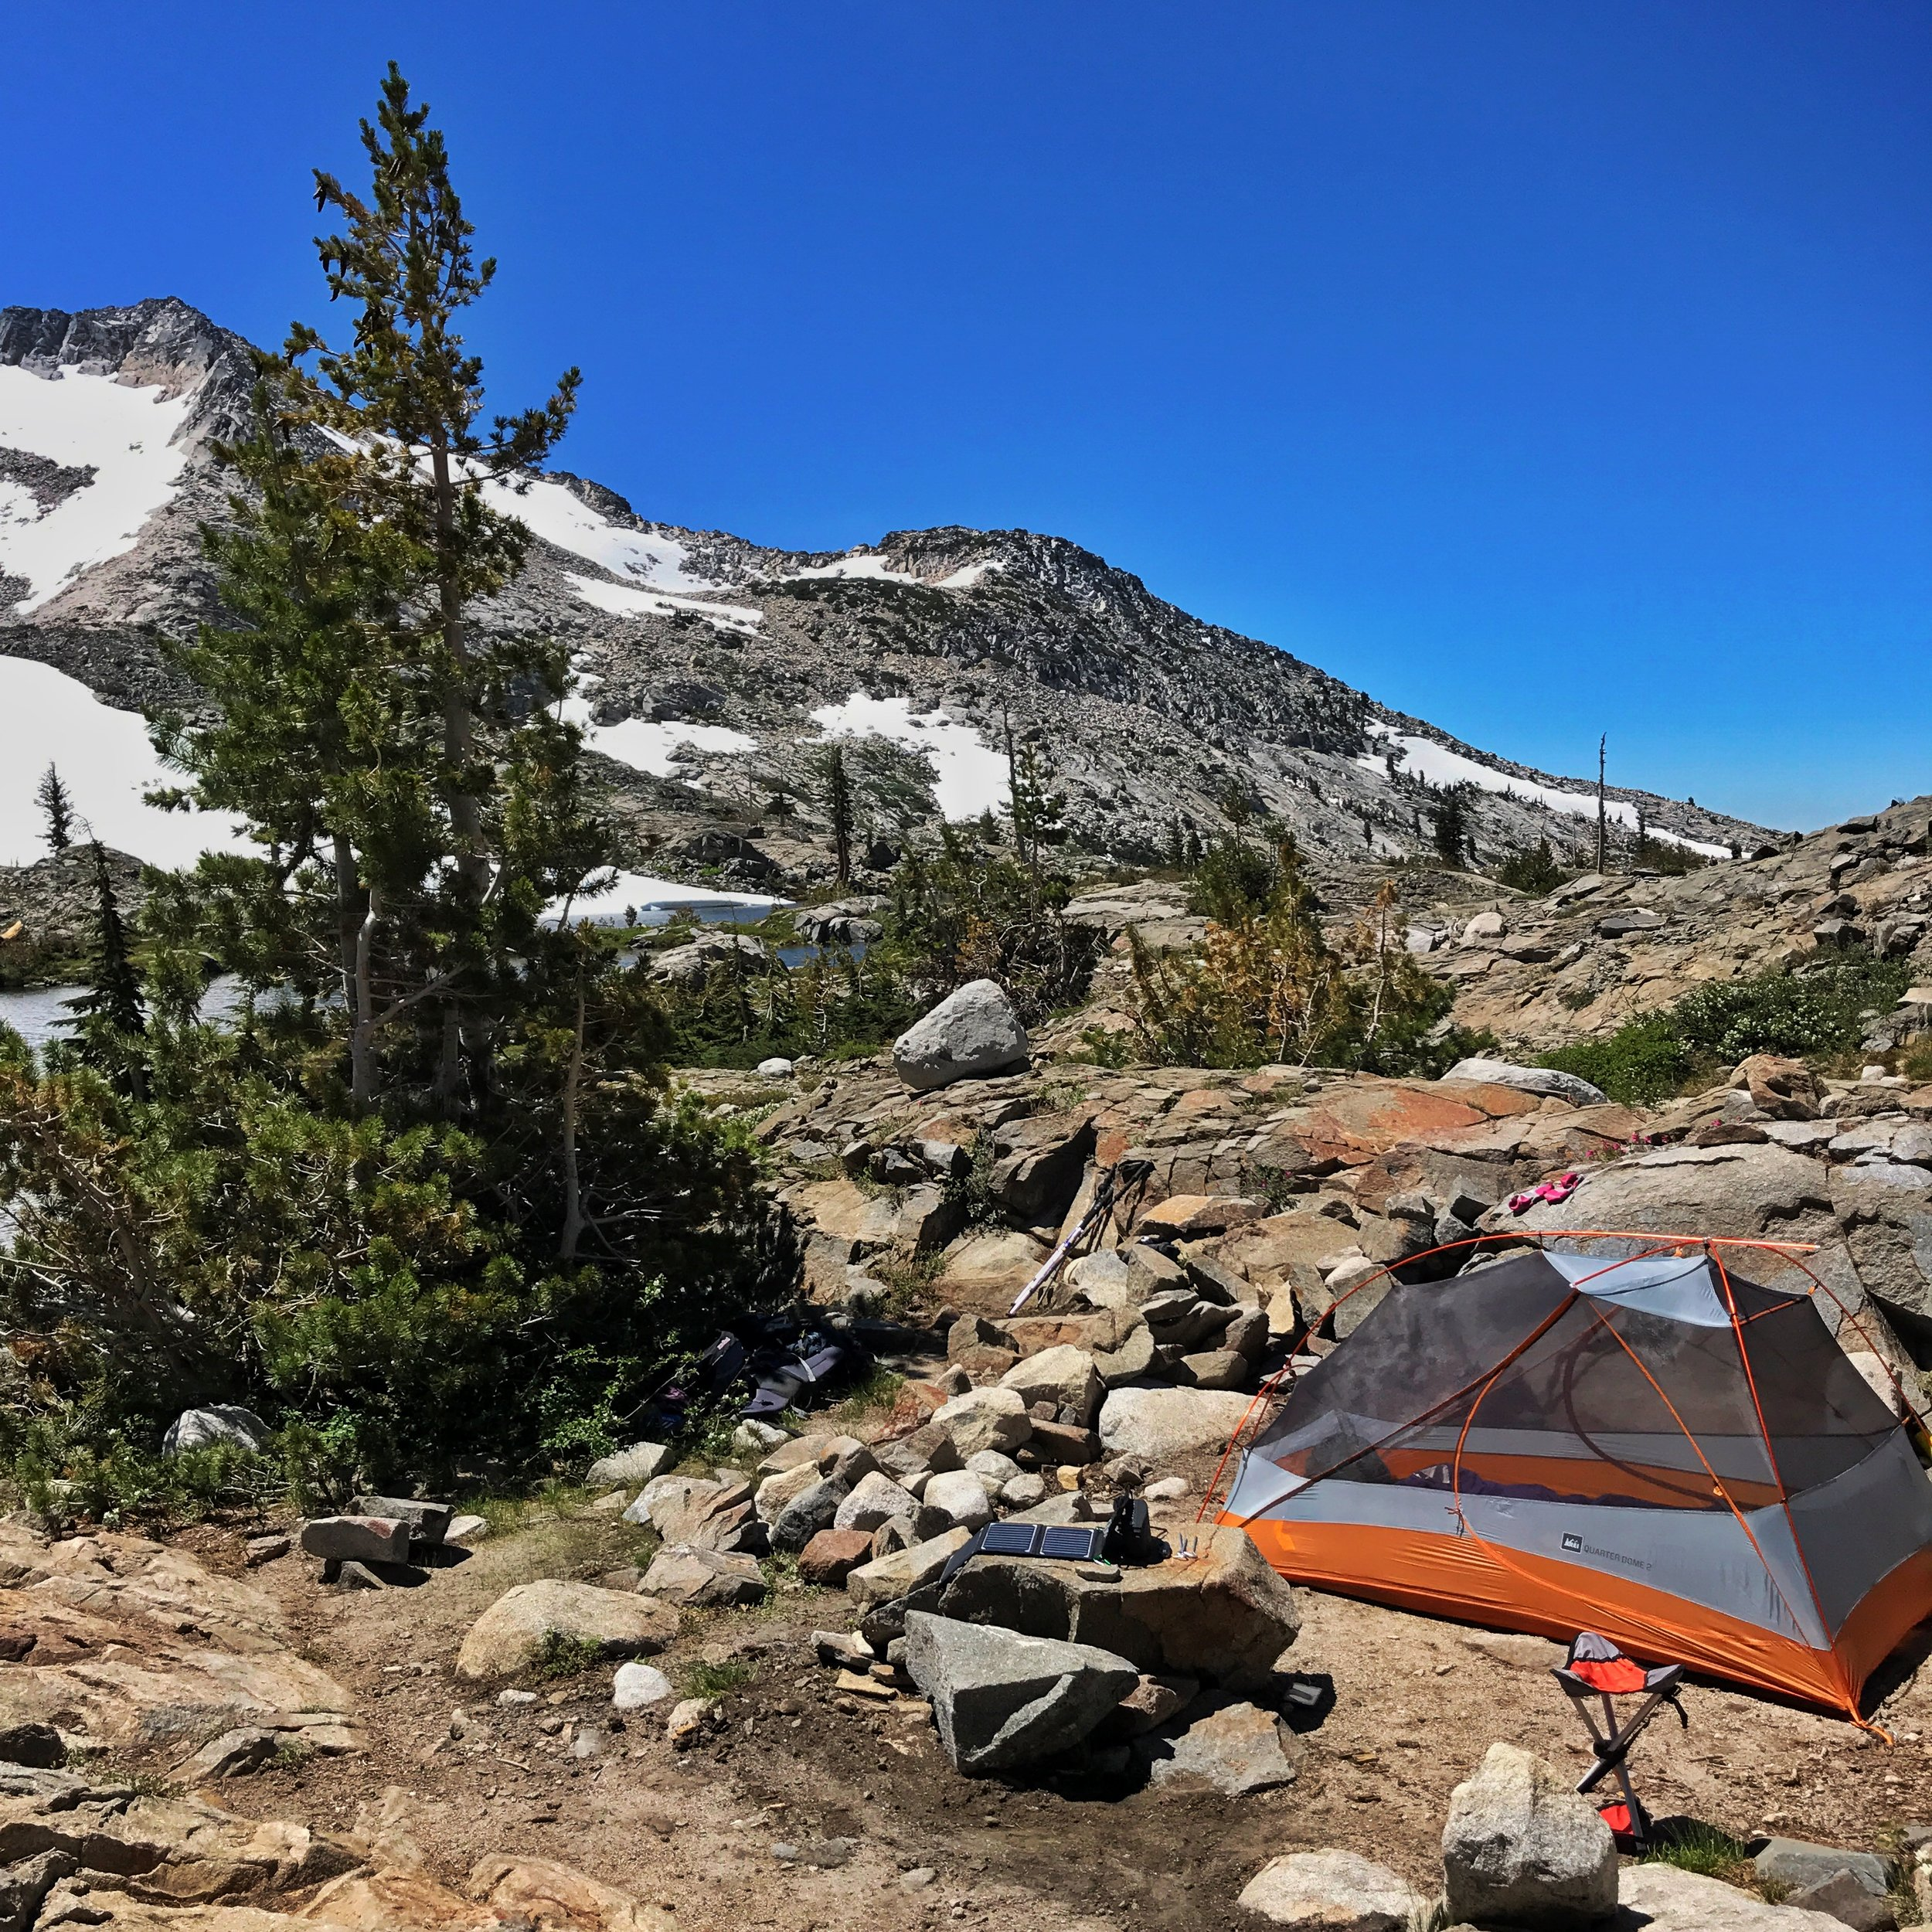 best campsite we could find. Perfect